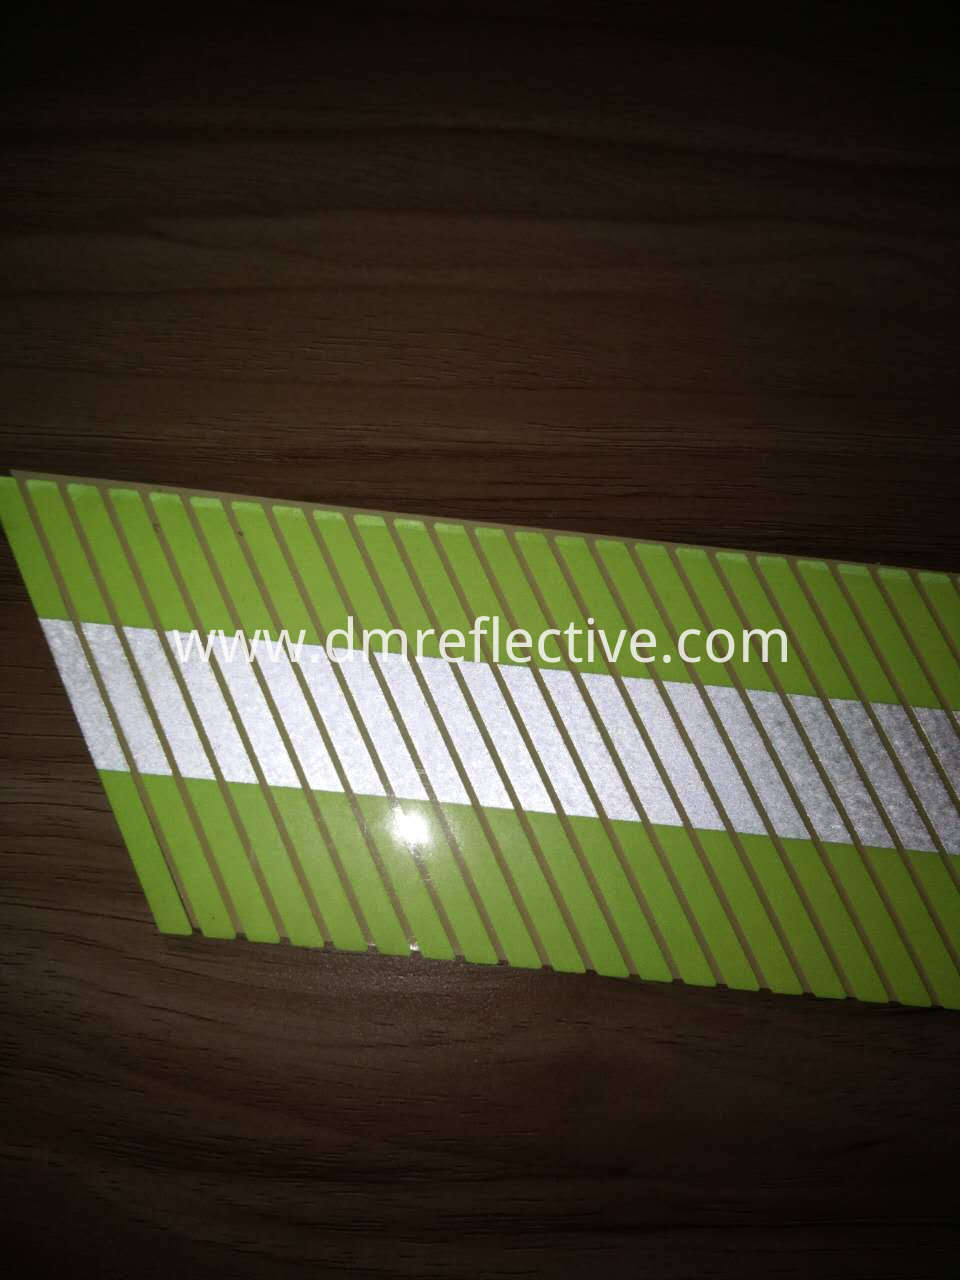 D1995 Flame Reflective film